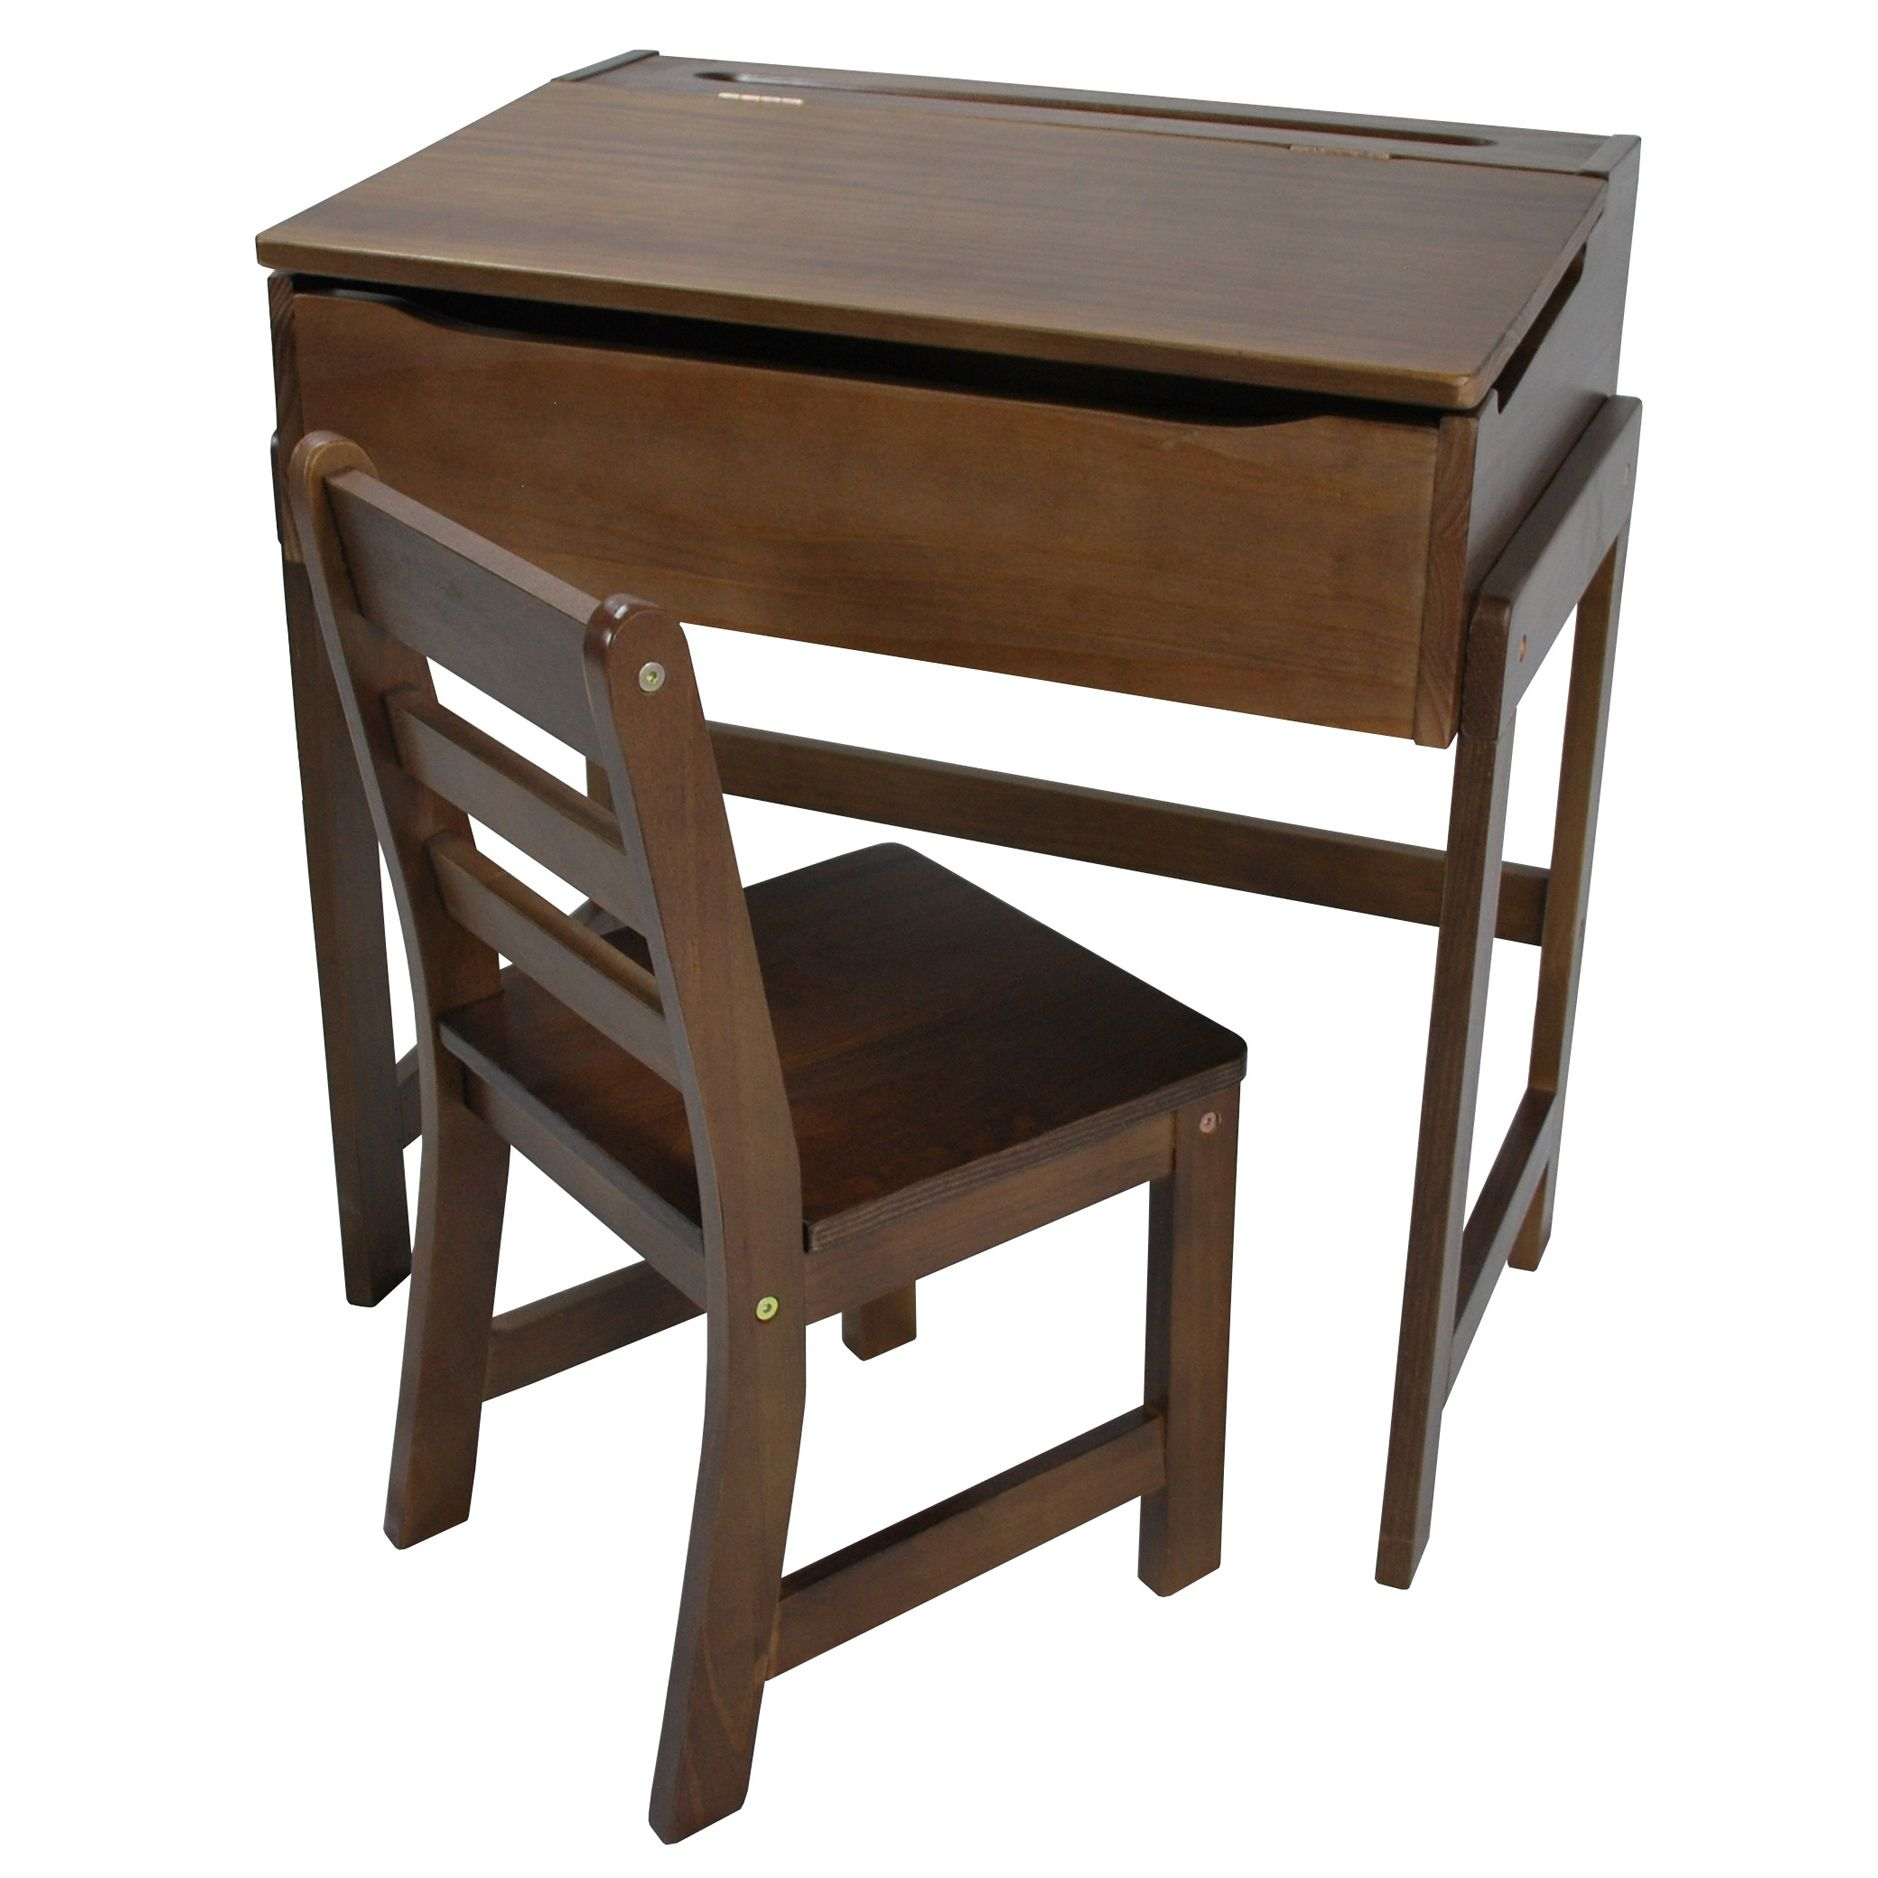 This walnut children\'s desk and chair set is made of solid wood for ...